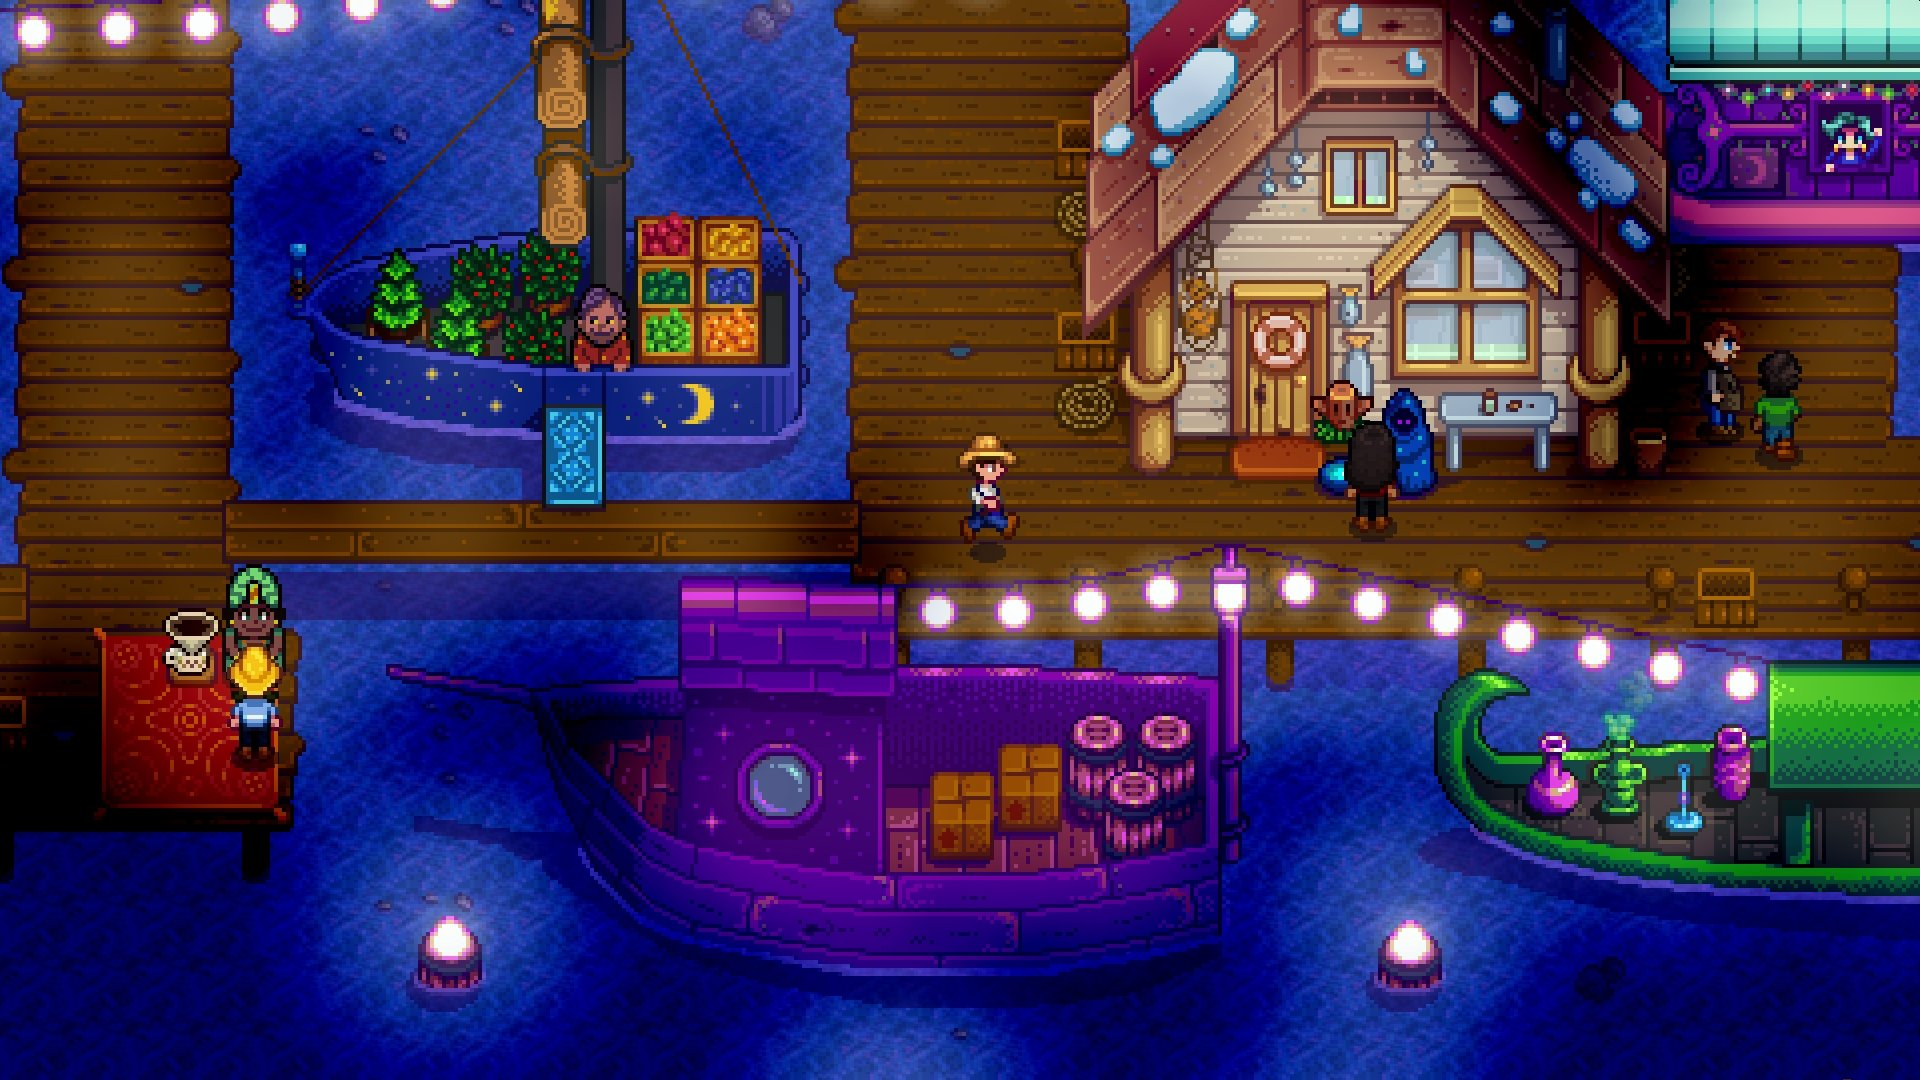 Stardew Valley Update 1.5 Will Offer 'Late-Game Content' And Is Preparing For Release